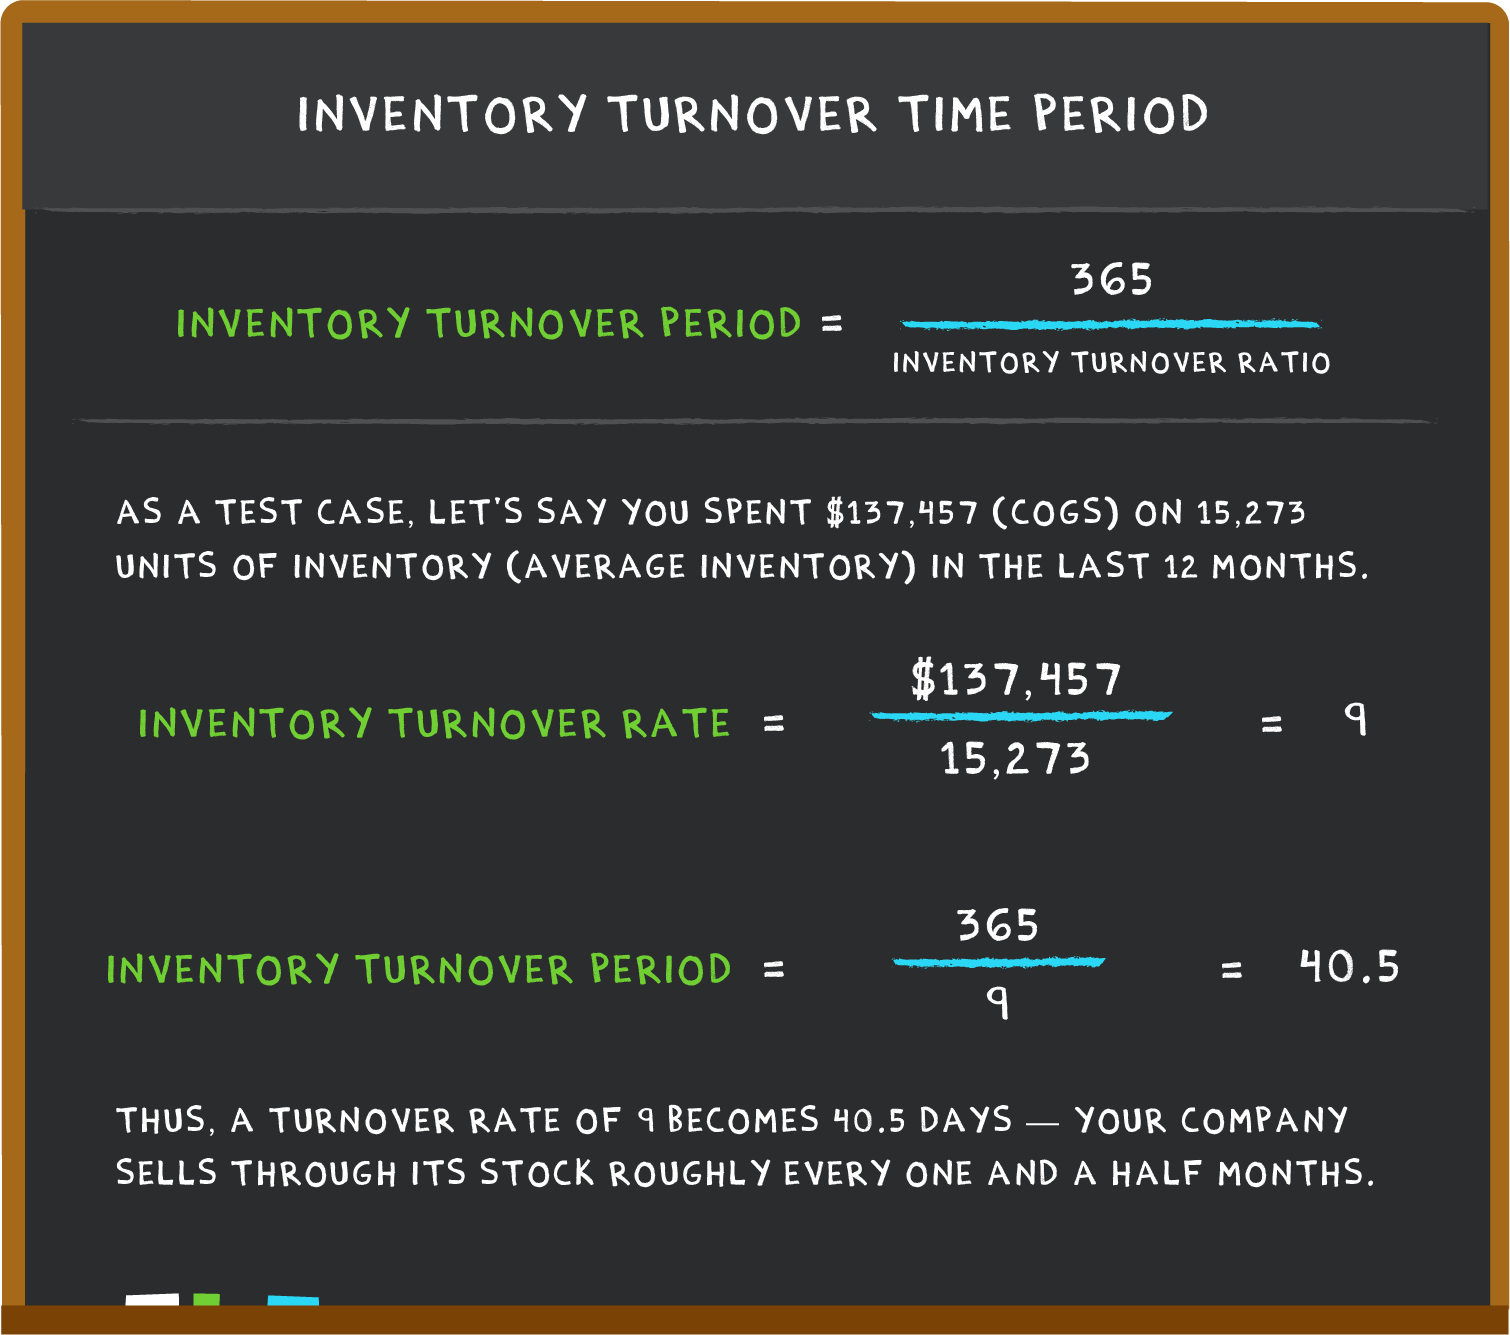 Inventory turnover time period calculation